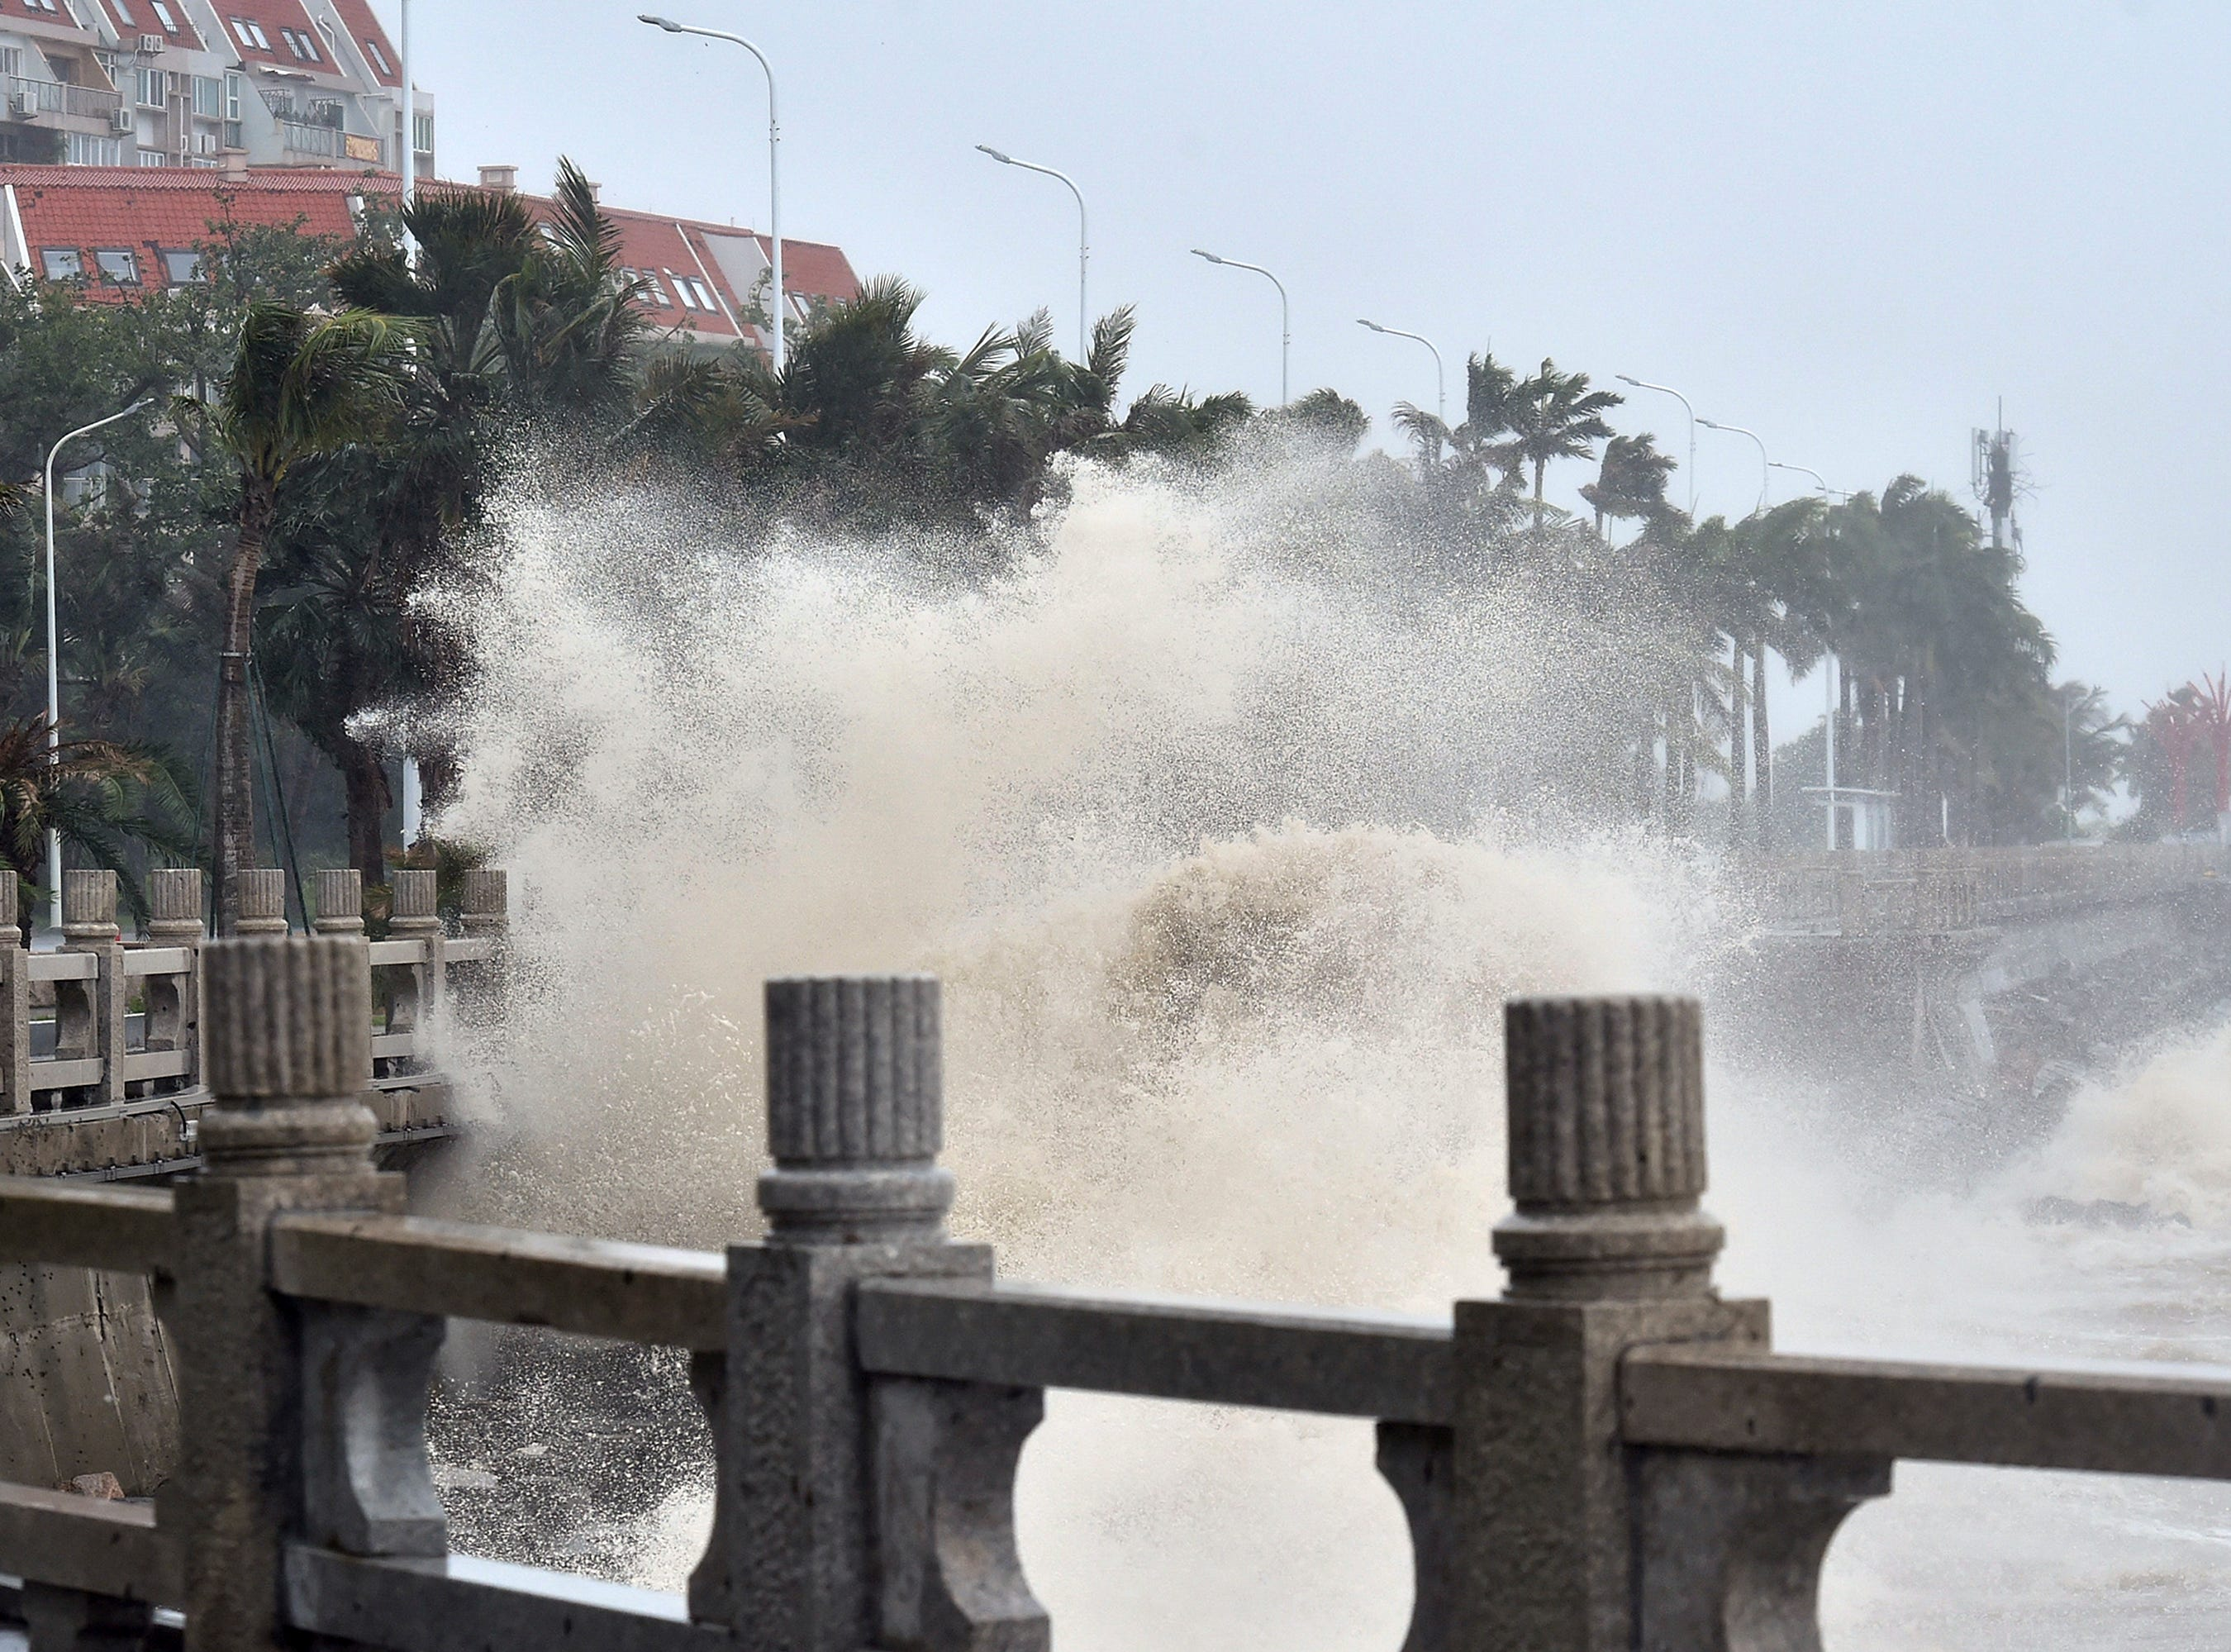 Waves crash onto the coastline in Zhuhai in southern China's Guangdong Province on Sunday, Sept. 16, 2018. Typhoon Mangkhut barrelled into southern China on Sunday after lashing the northern Philippines with strong winds and heavy rain that left at least 64 people dead and dozens more feared buried in a landslide.